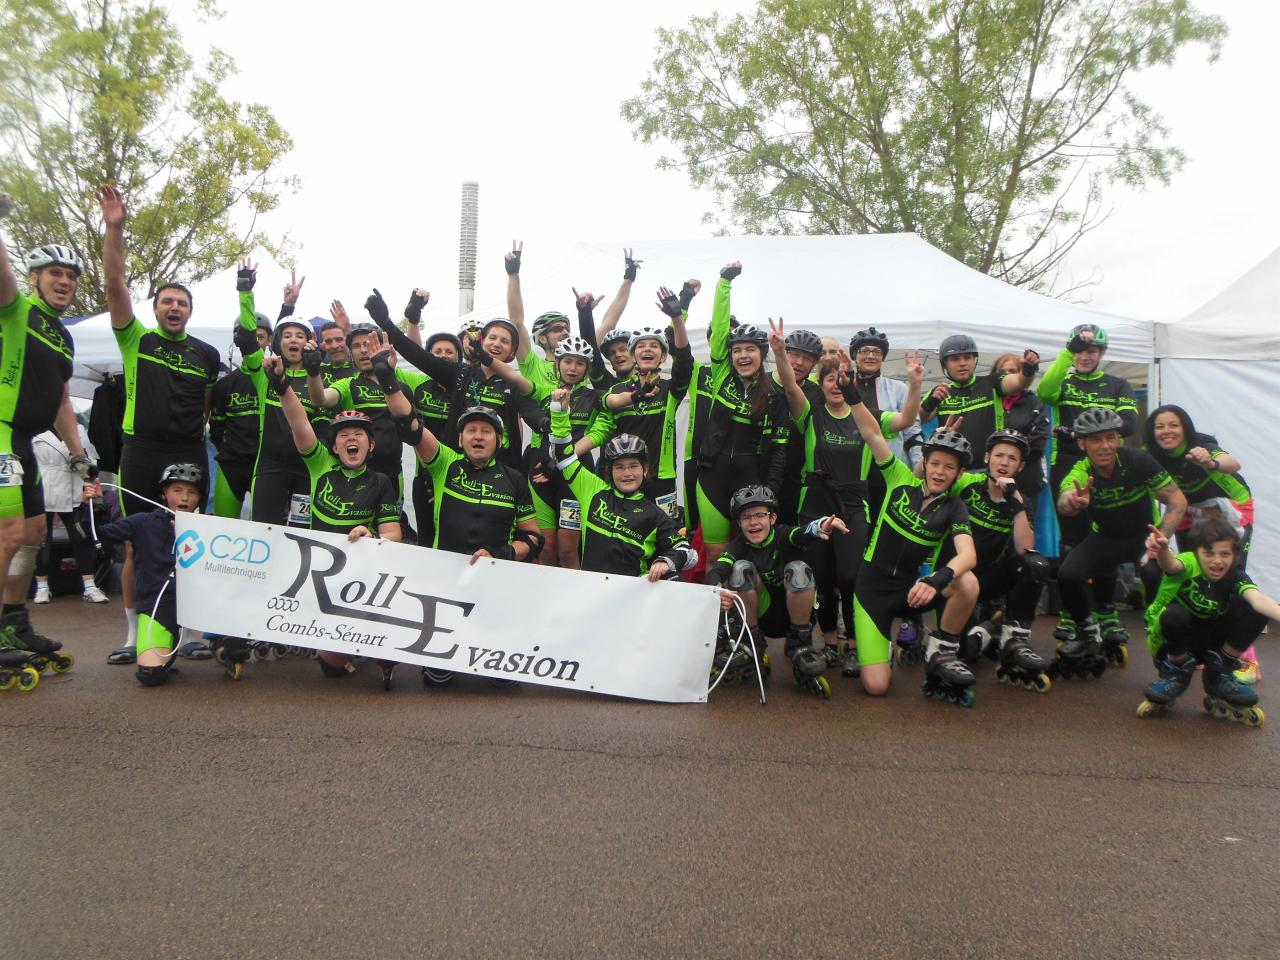 RollEvasion - 6hTroyes 2016 - 42